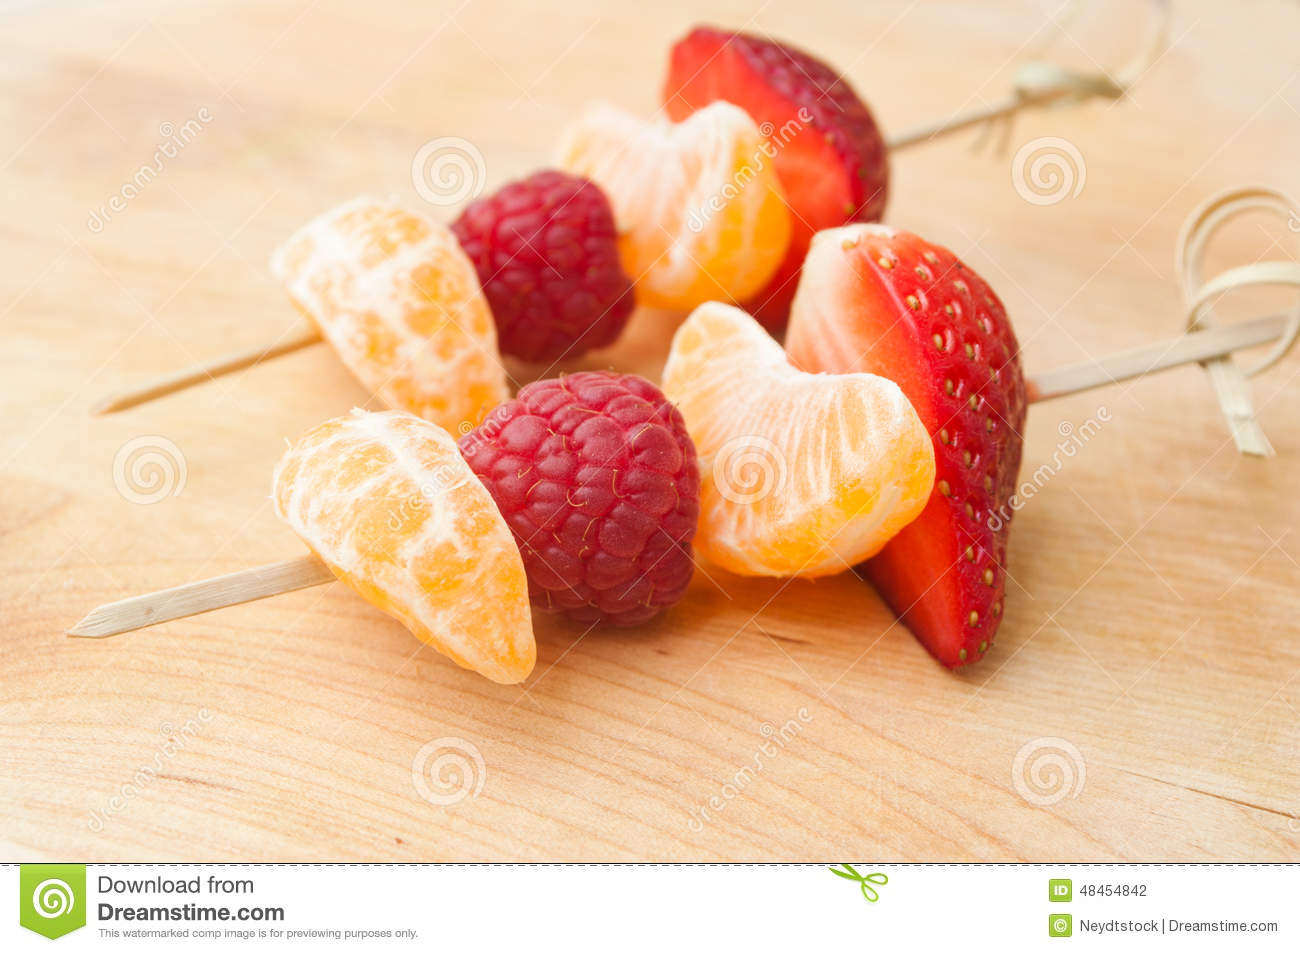 Pr sentation de brochette de fruits photo stock image 48454842 - Presentation de brochette de fruits ...